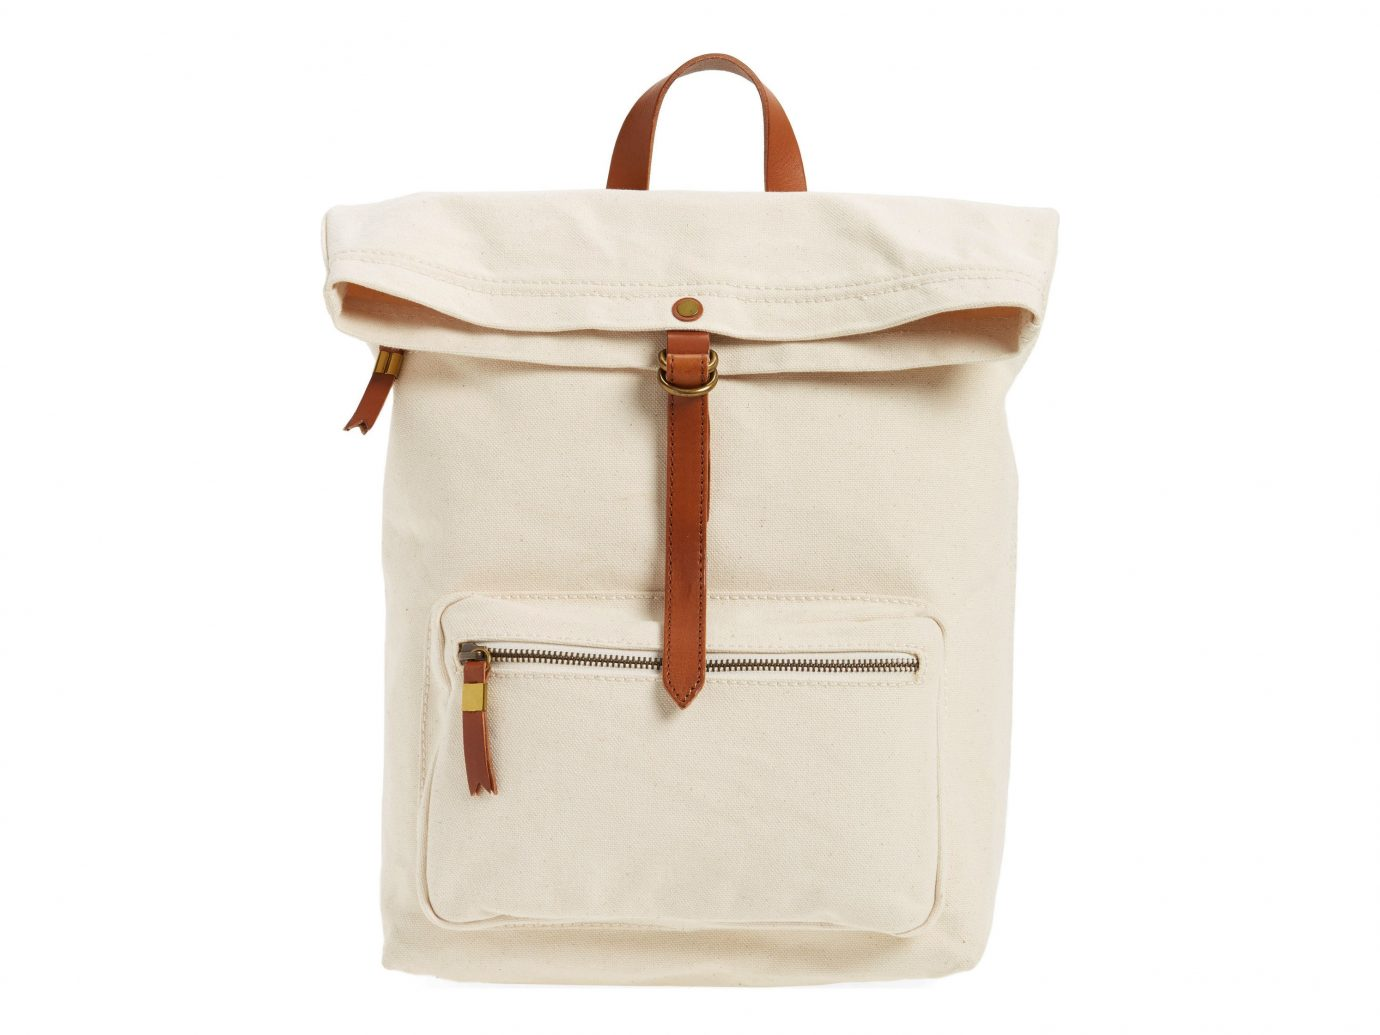 Morocco Packing Tips Style + Design Travel Shop white bag product beige shoulder bag product design